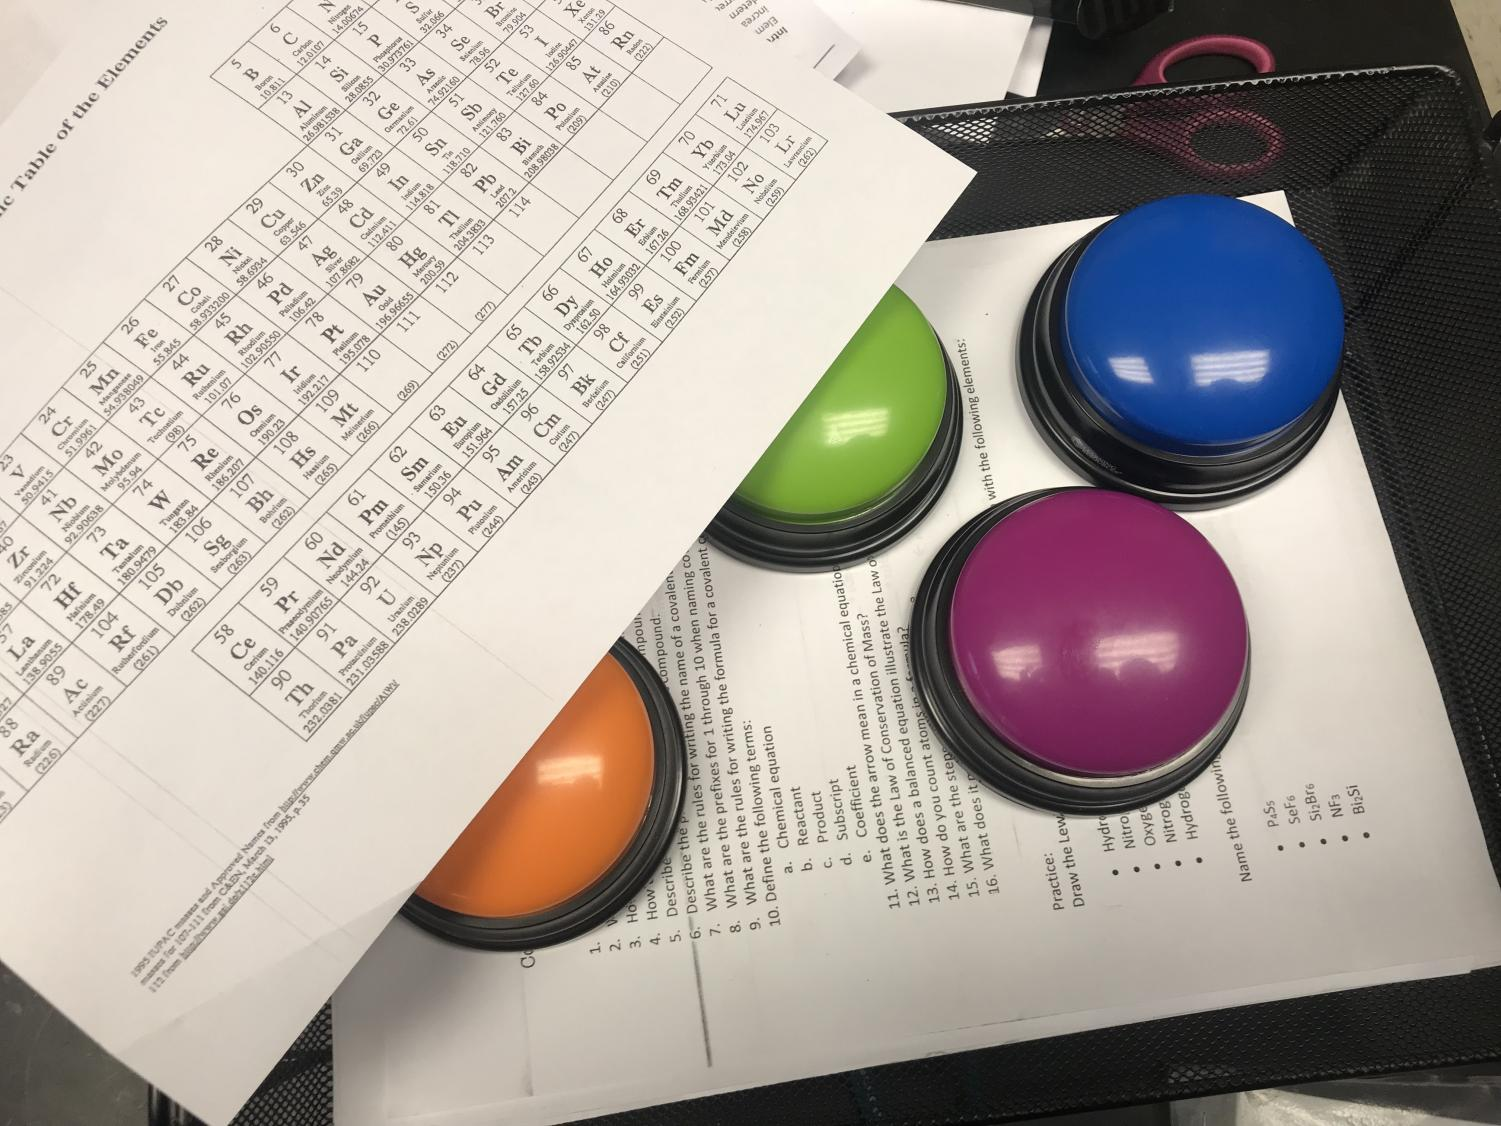 Pictured above are a couple examples of Mrs. Greene's techniques, including a Table of Elements, study guide, and buzzers for the Jeopardy games.